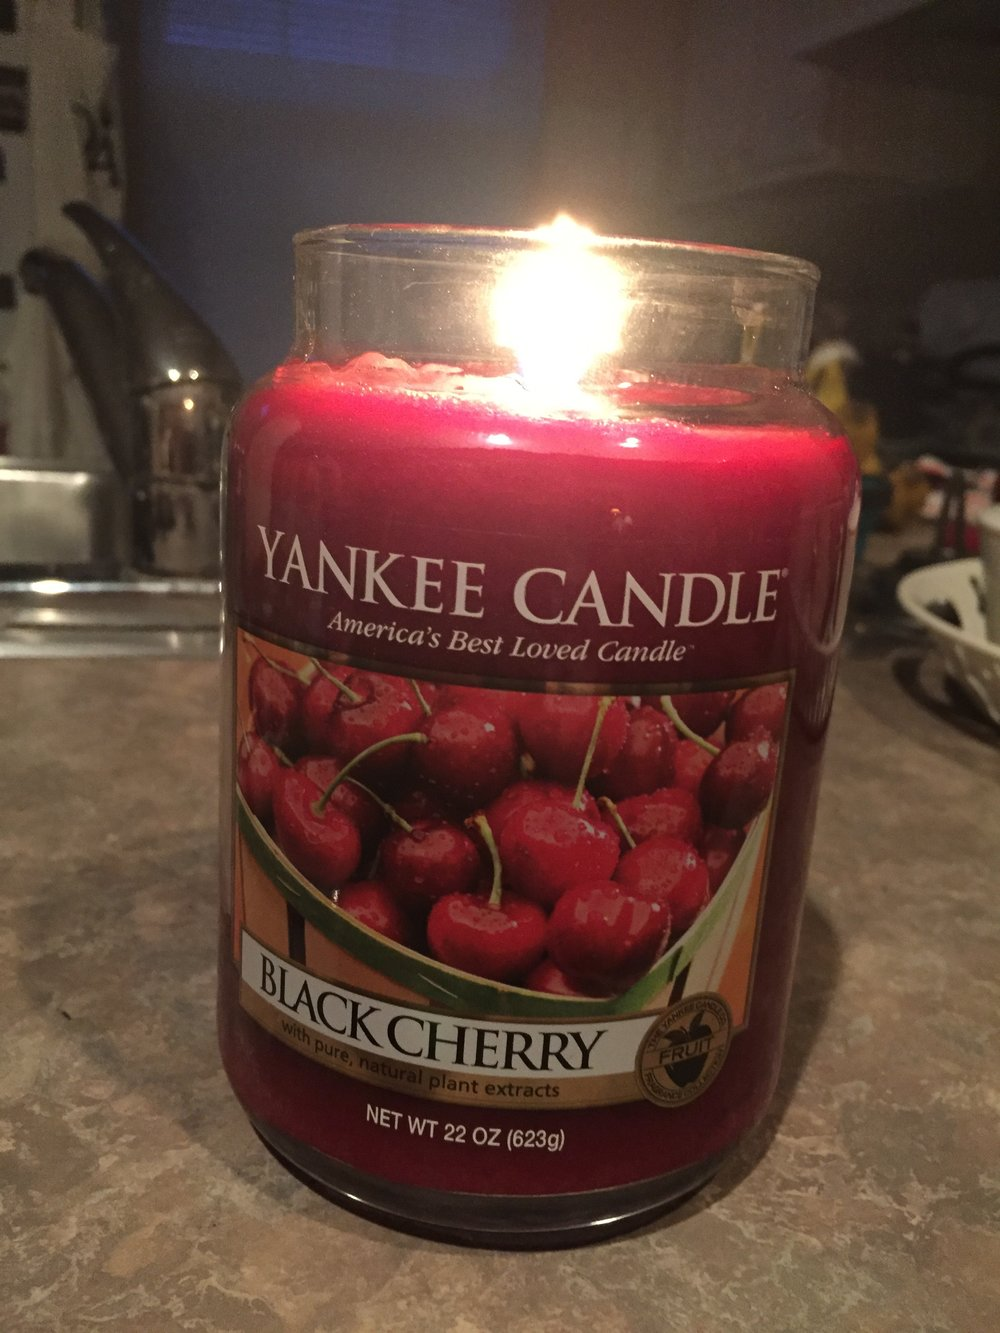 This candle always reminds me of college, specifically my freshman year. One of the girls who lived next door to me kept this candle on her desk.